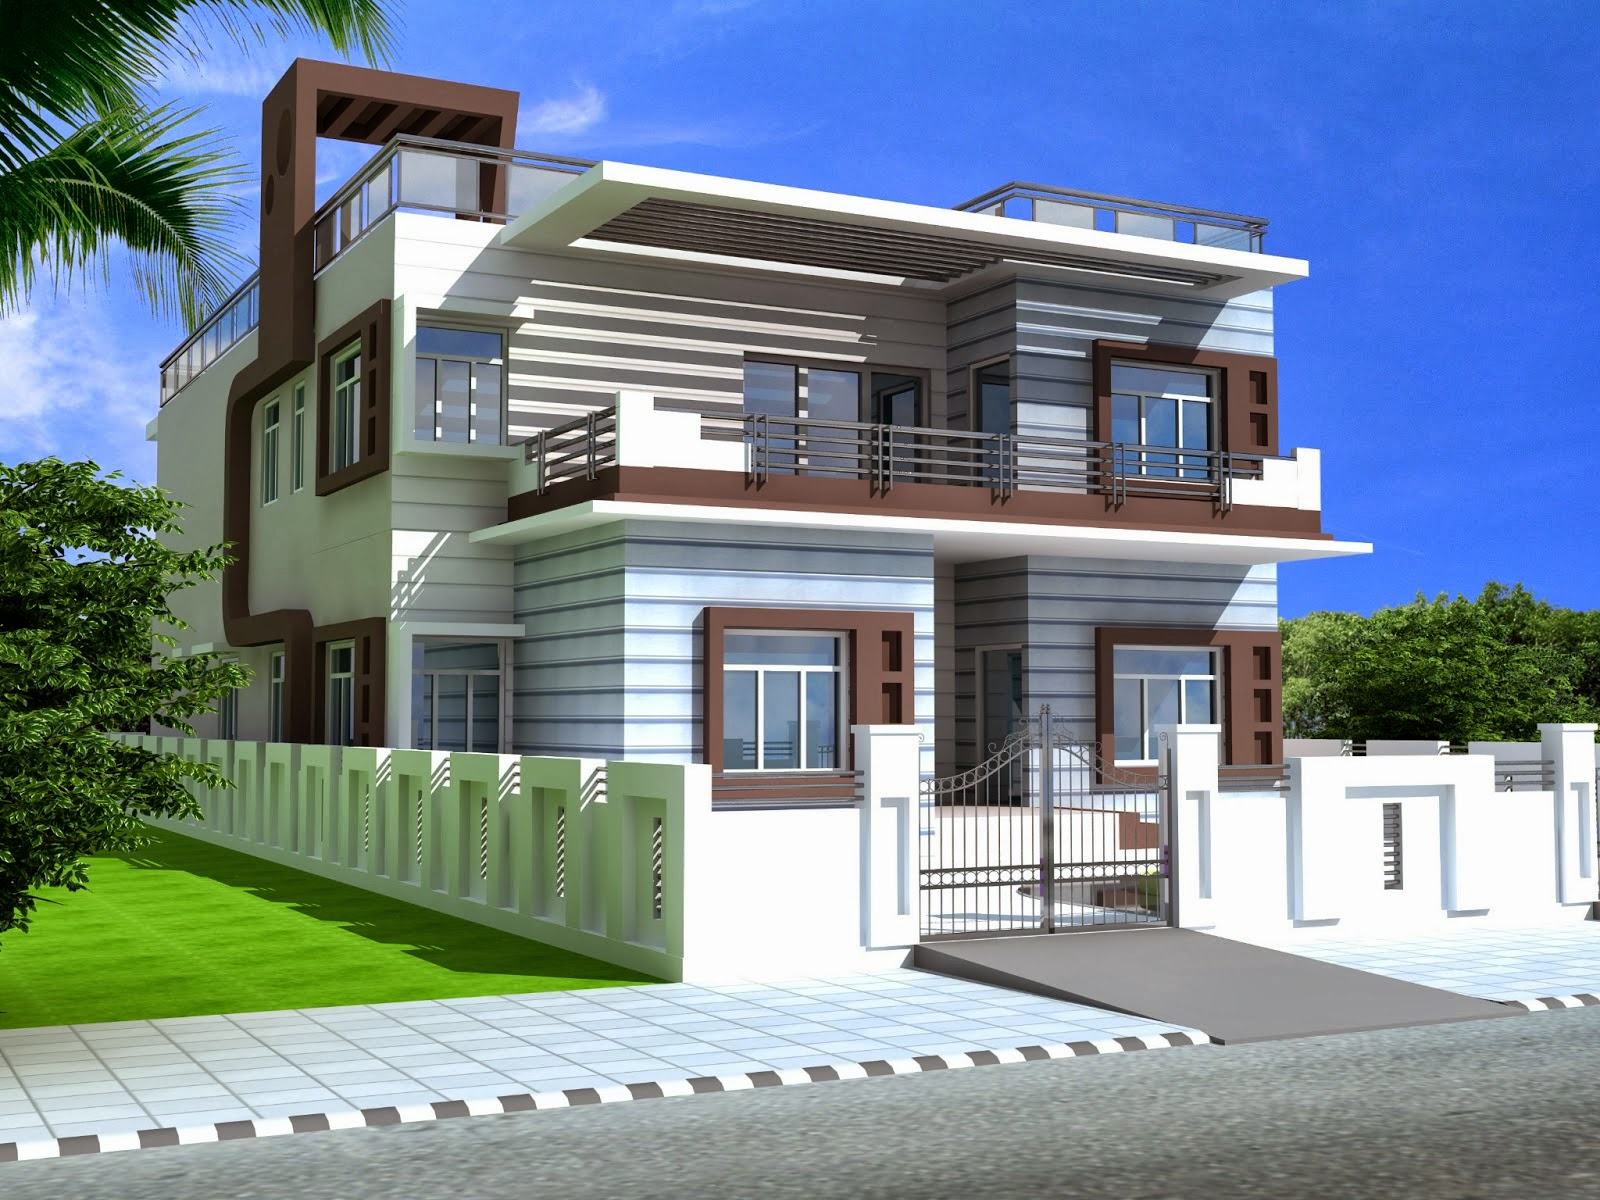 Foundation dezin decor duplex homes 3ds max work for Types of duplex houses